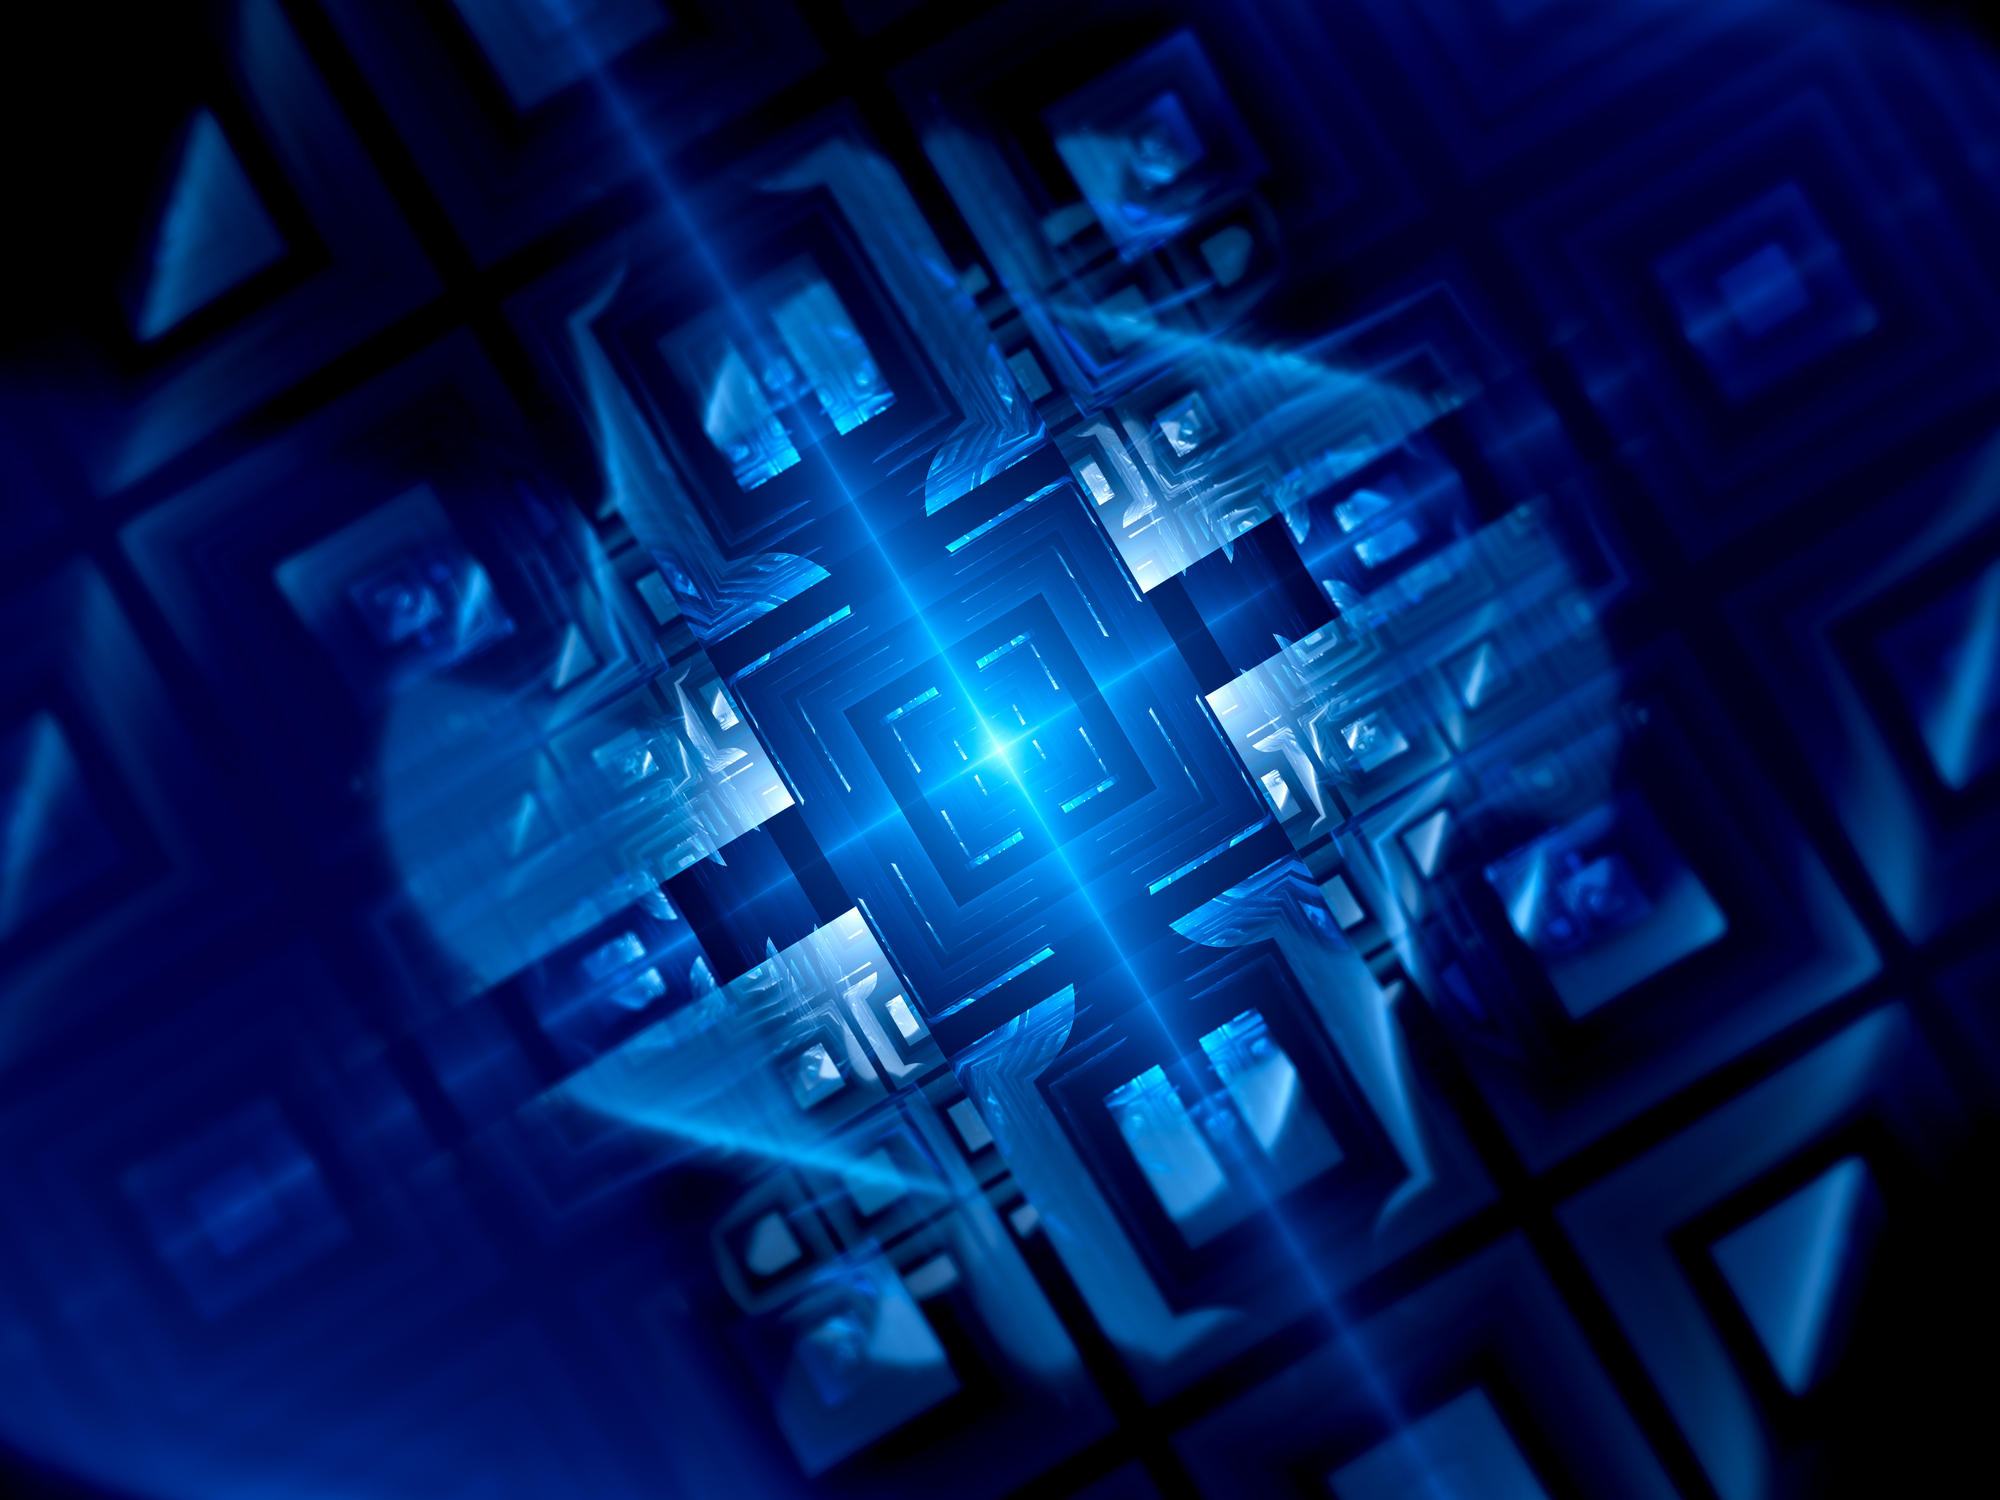 Intelligence official: US still leads in quantum computing ... for now